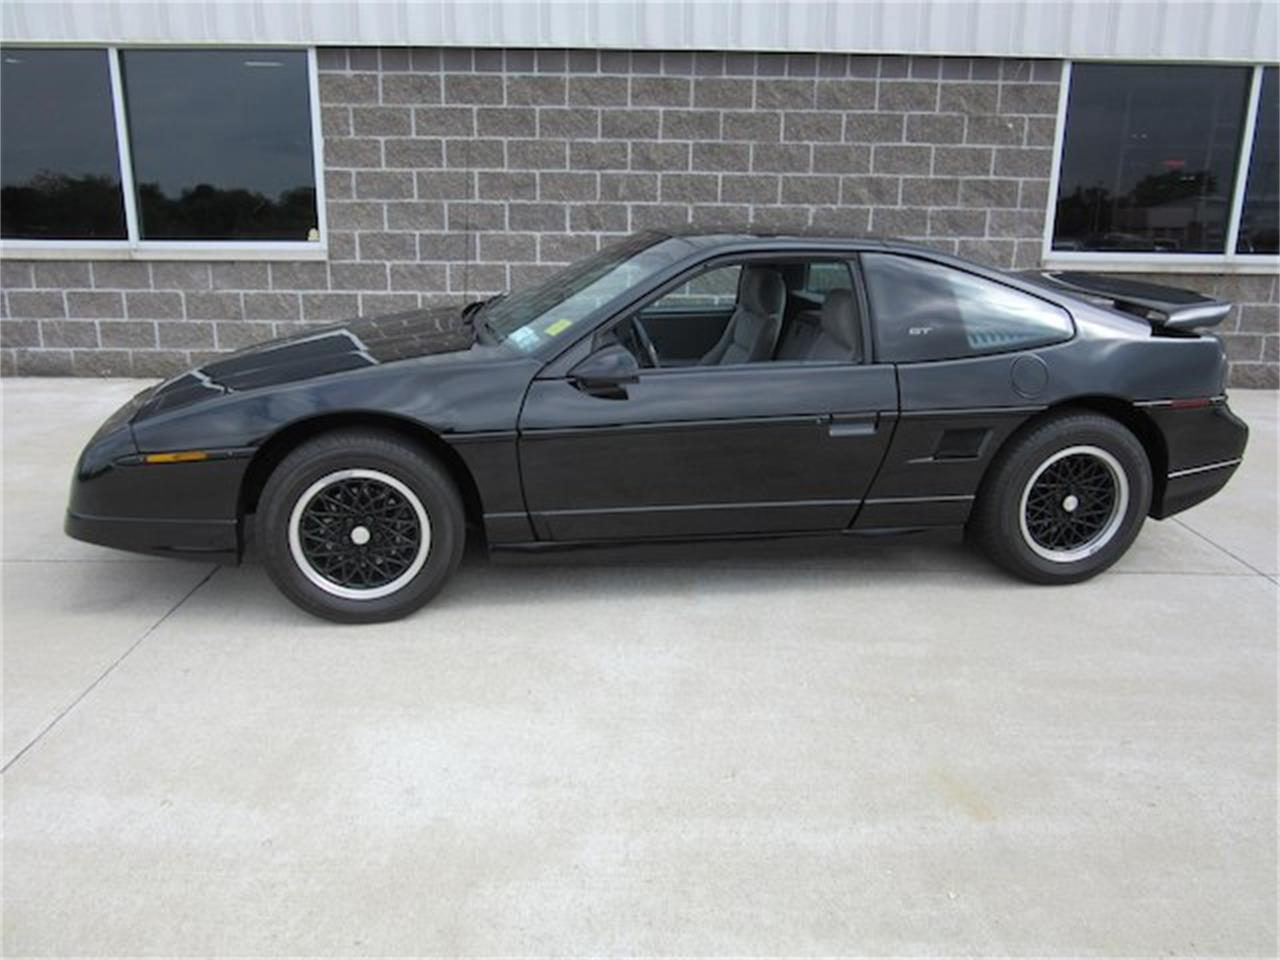 Large Picture of 1988 Fiero located in Greenwood Indiana - $15,900.00 - NVQQ